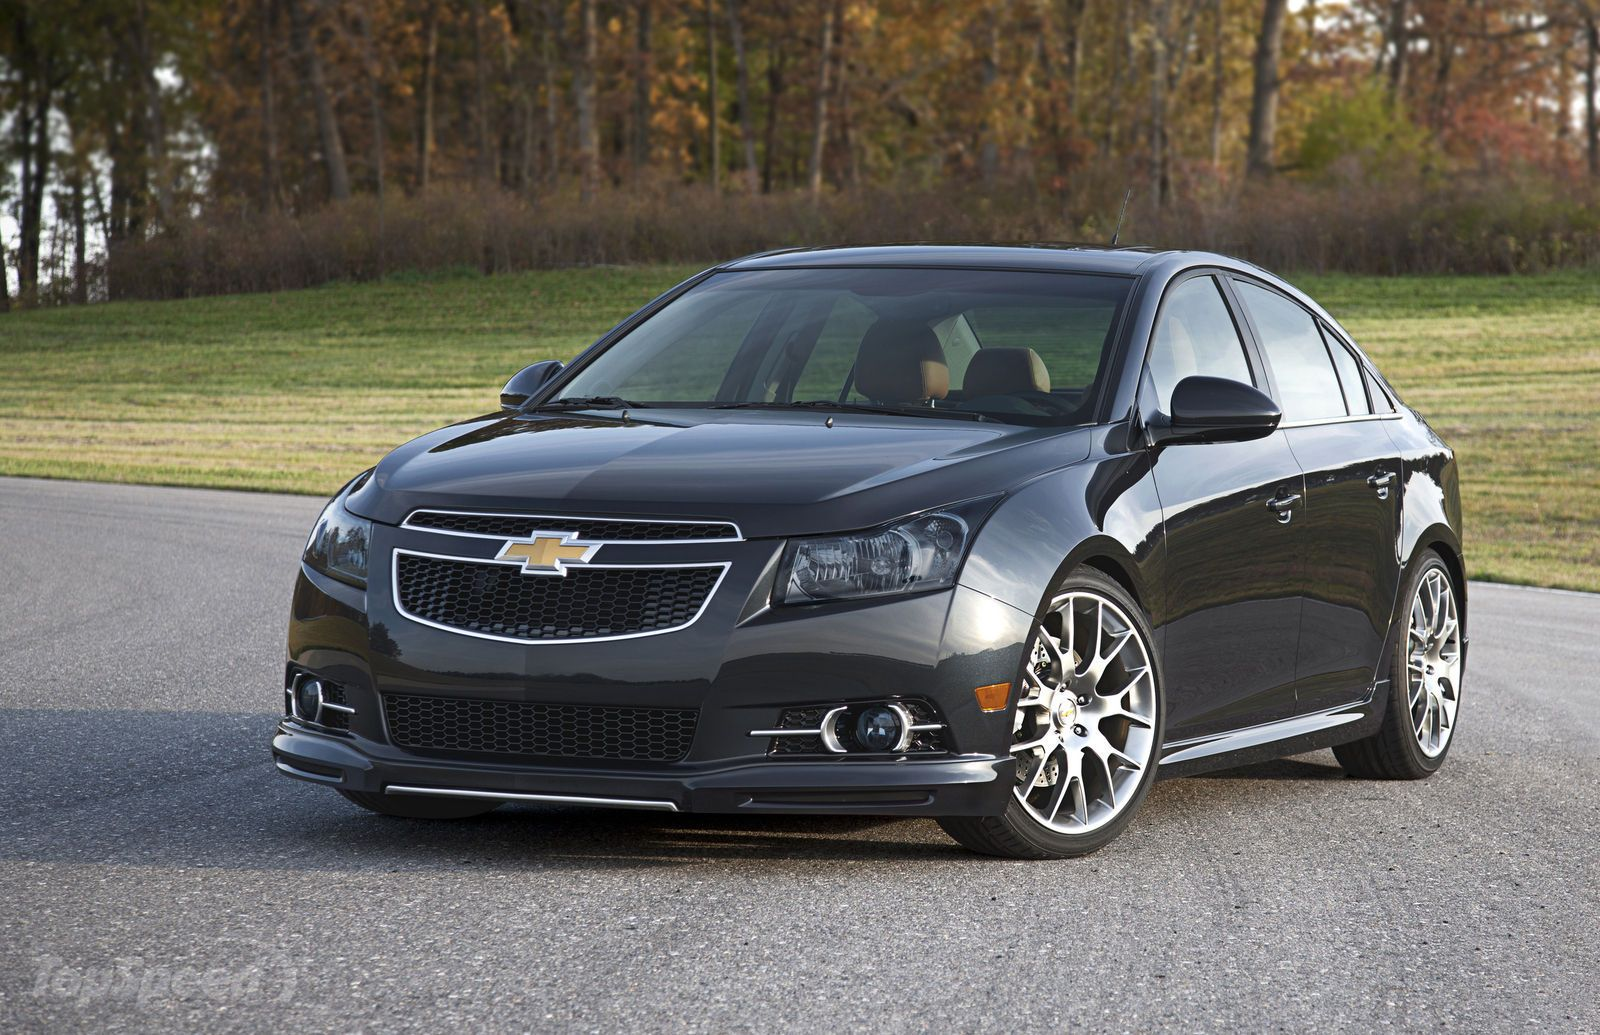 Chevy cruze with rims cruze cruze cruze pinterest chevy cars and dream cars